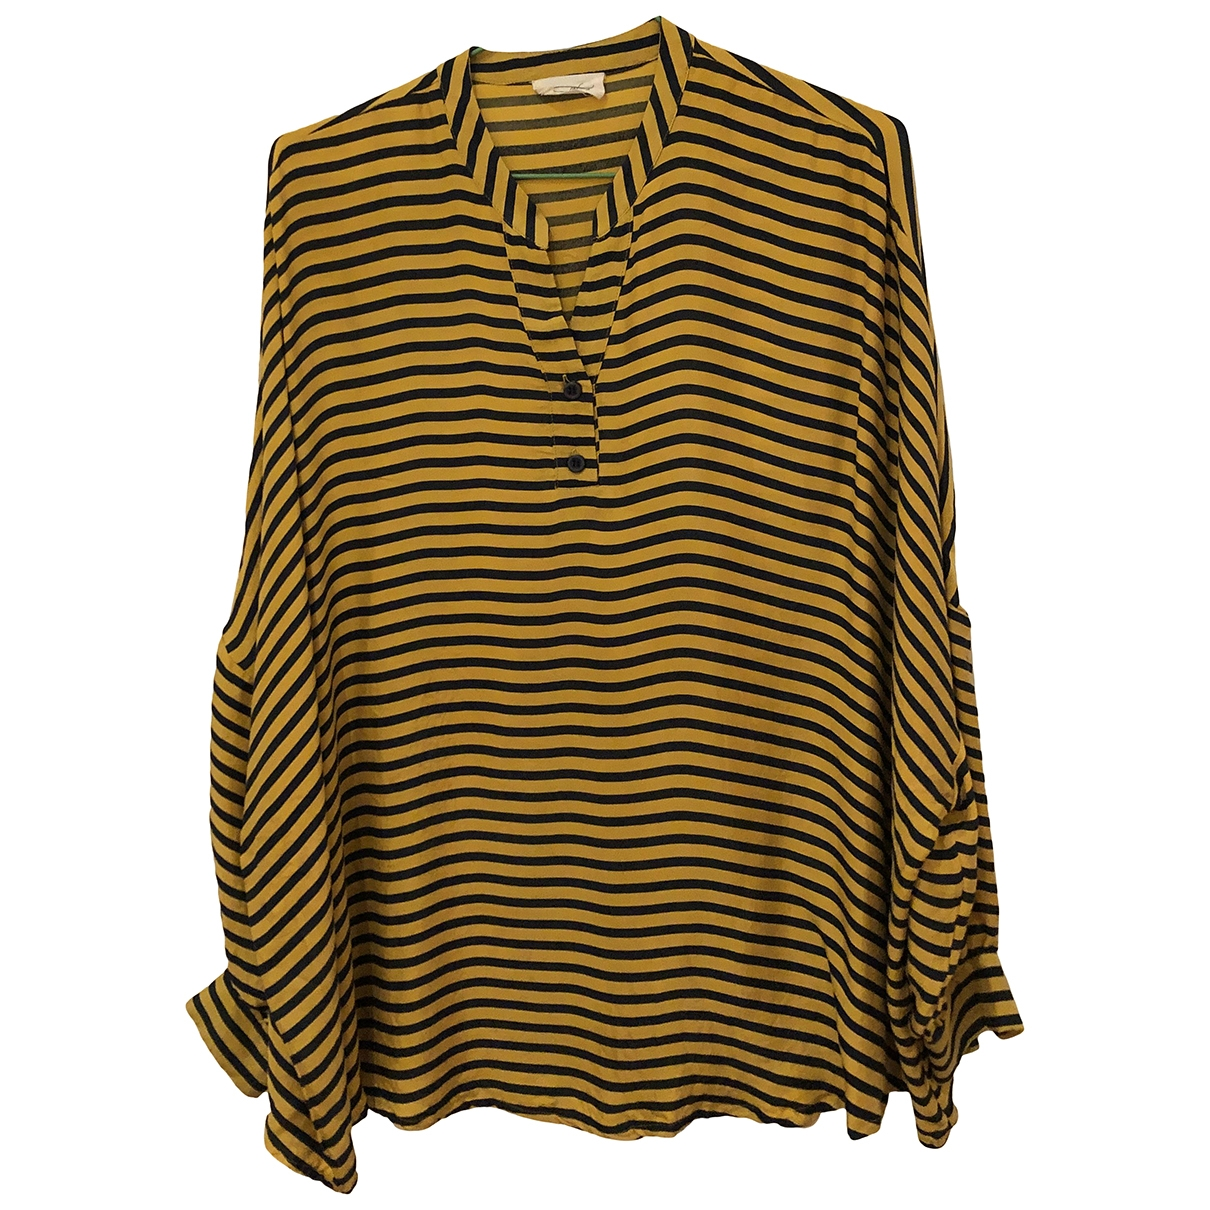 American Vintage \N Yellow  top for Women 36 FR